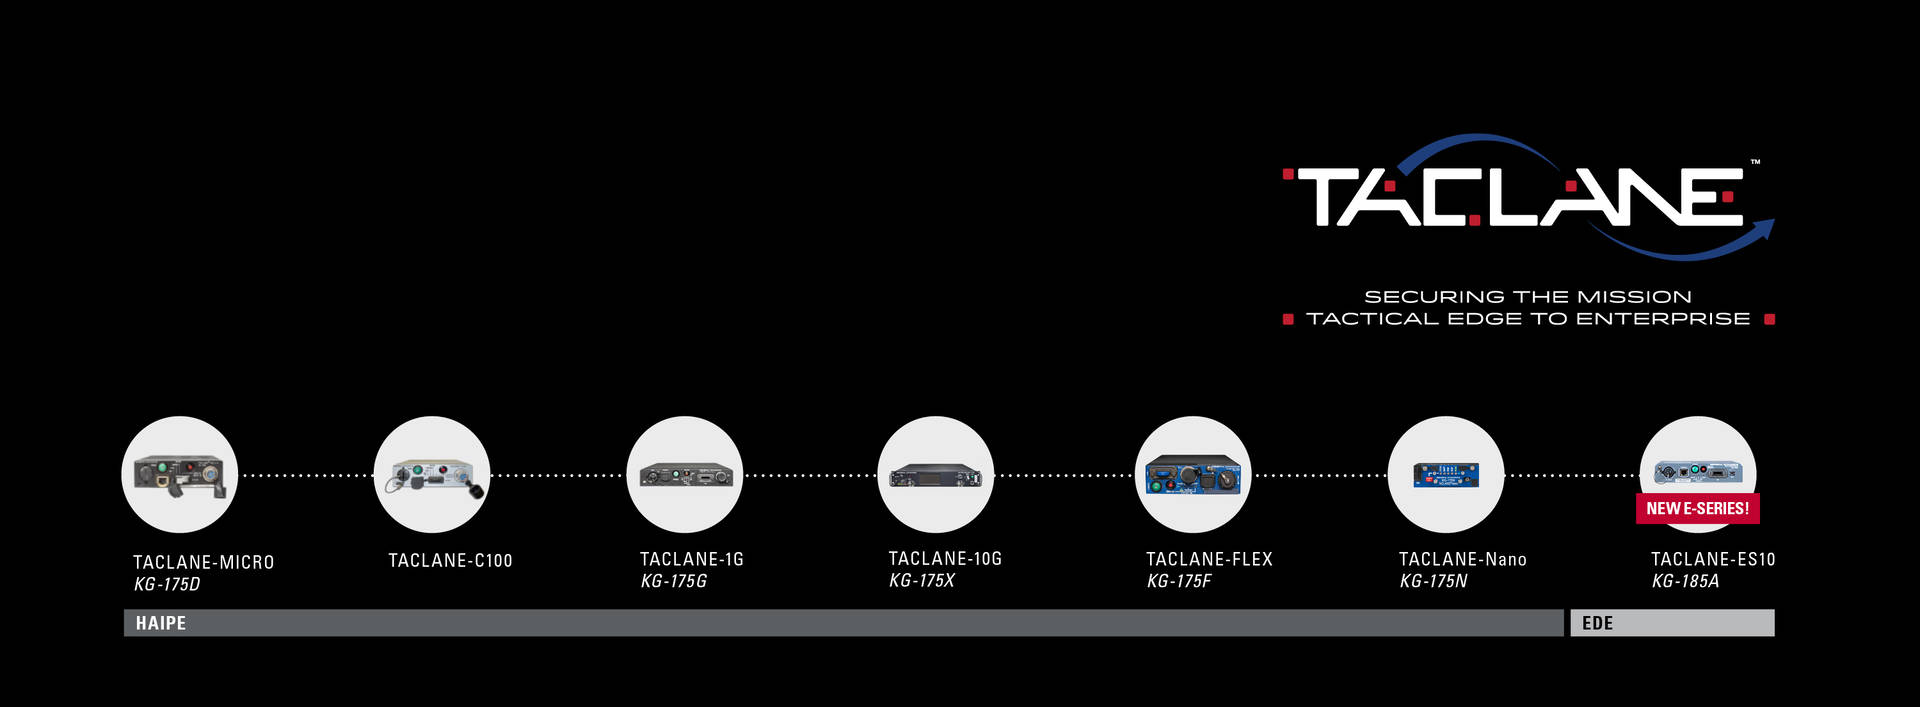 TACLANE_Features Timeline Graphic 2